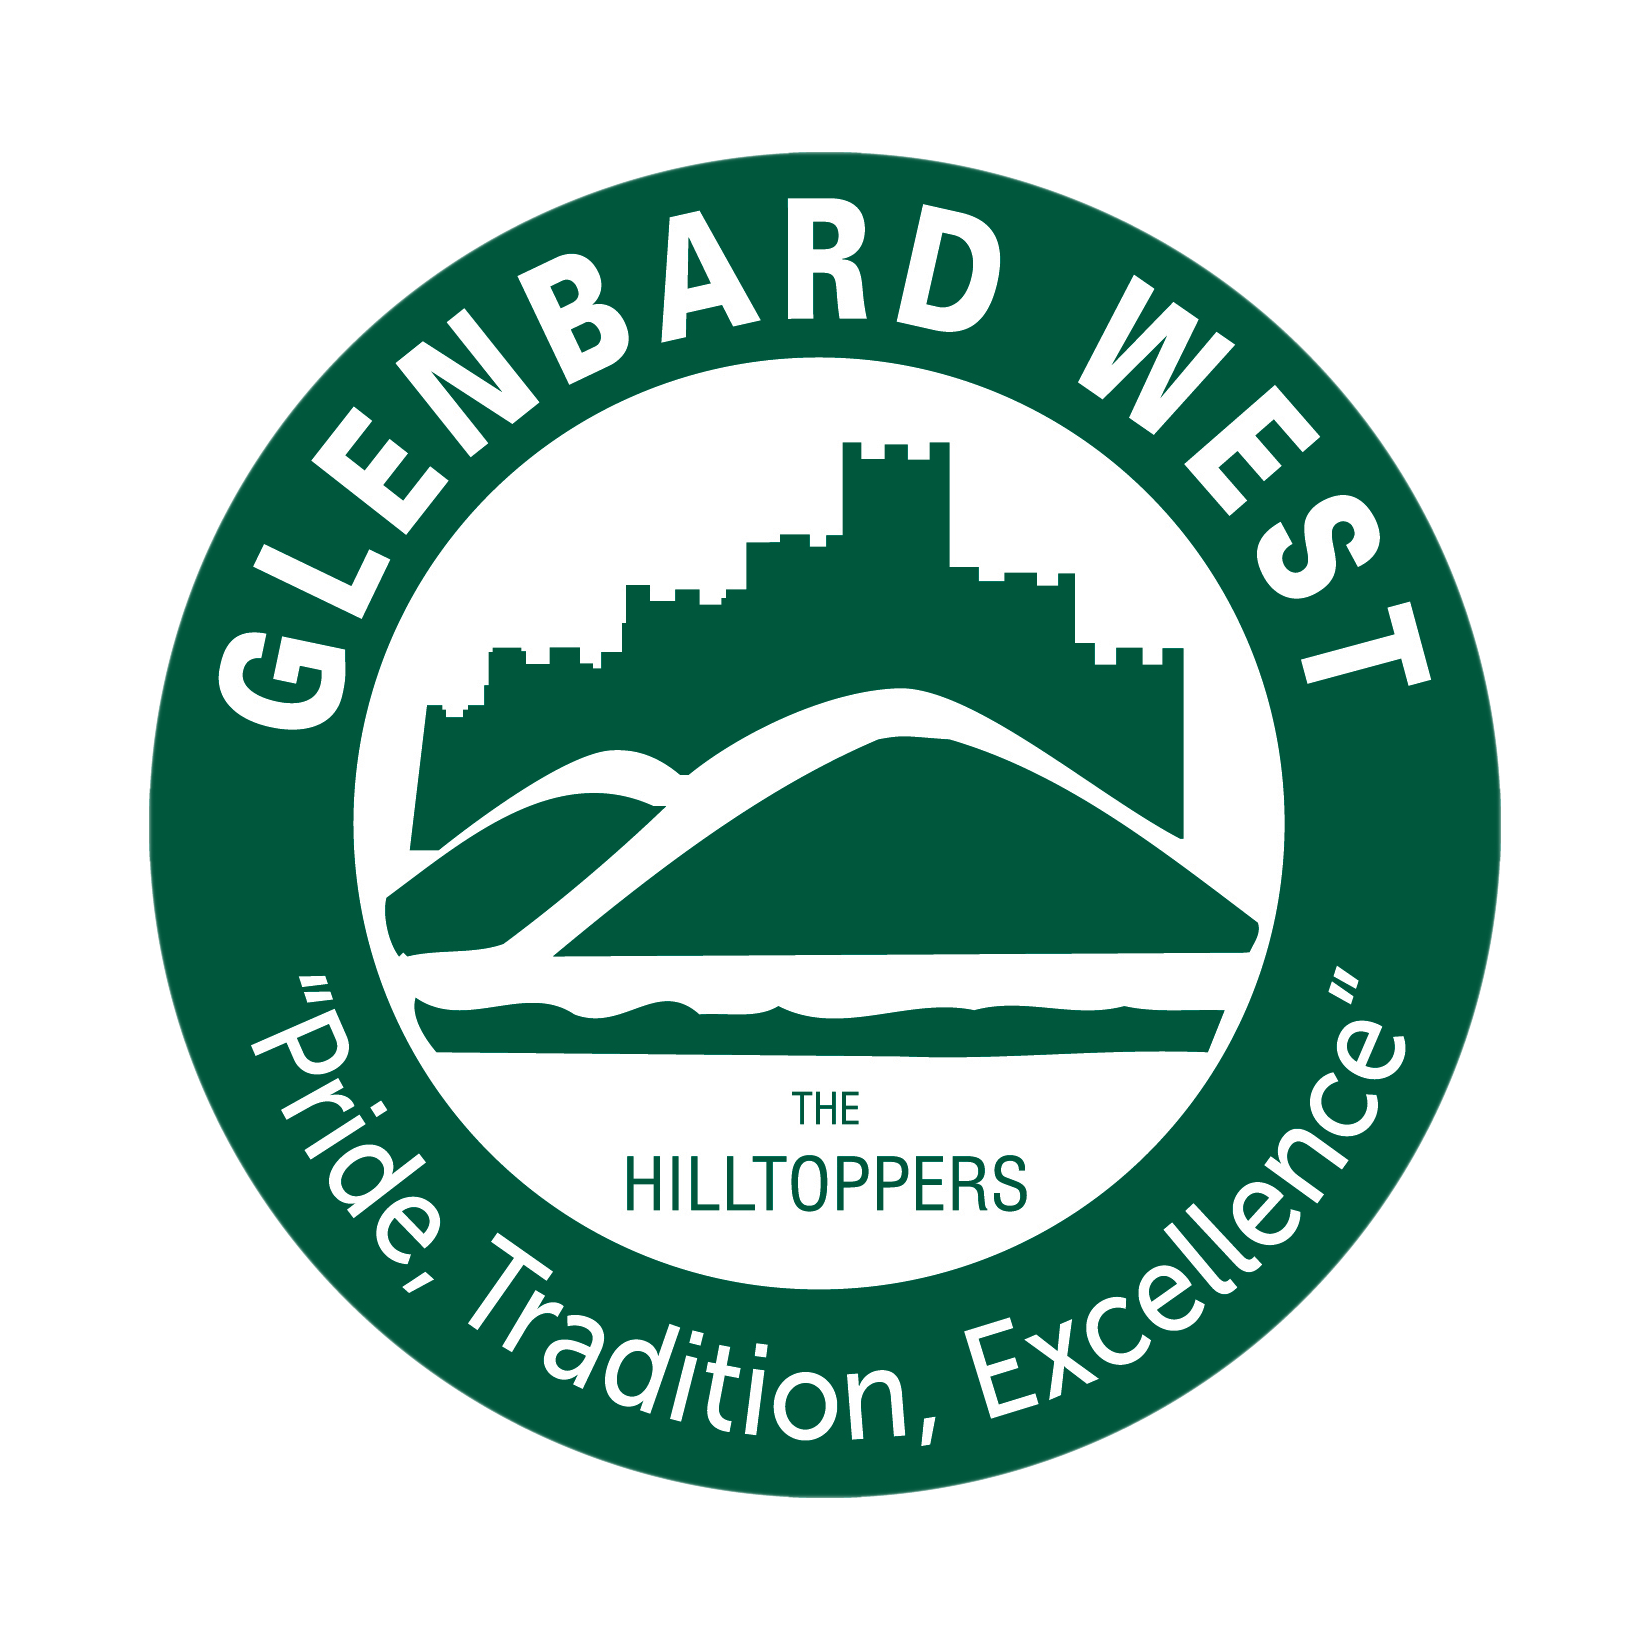 Glenbard West High School logo